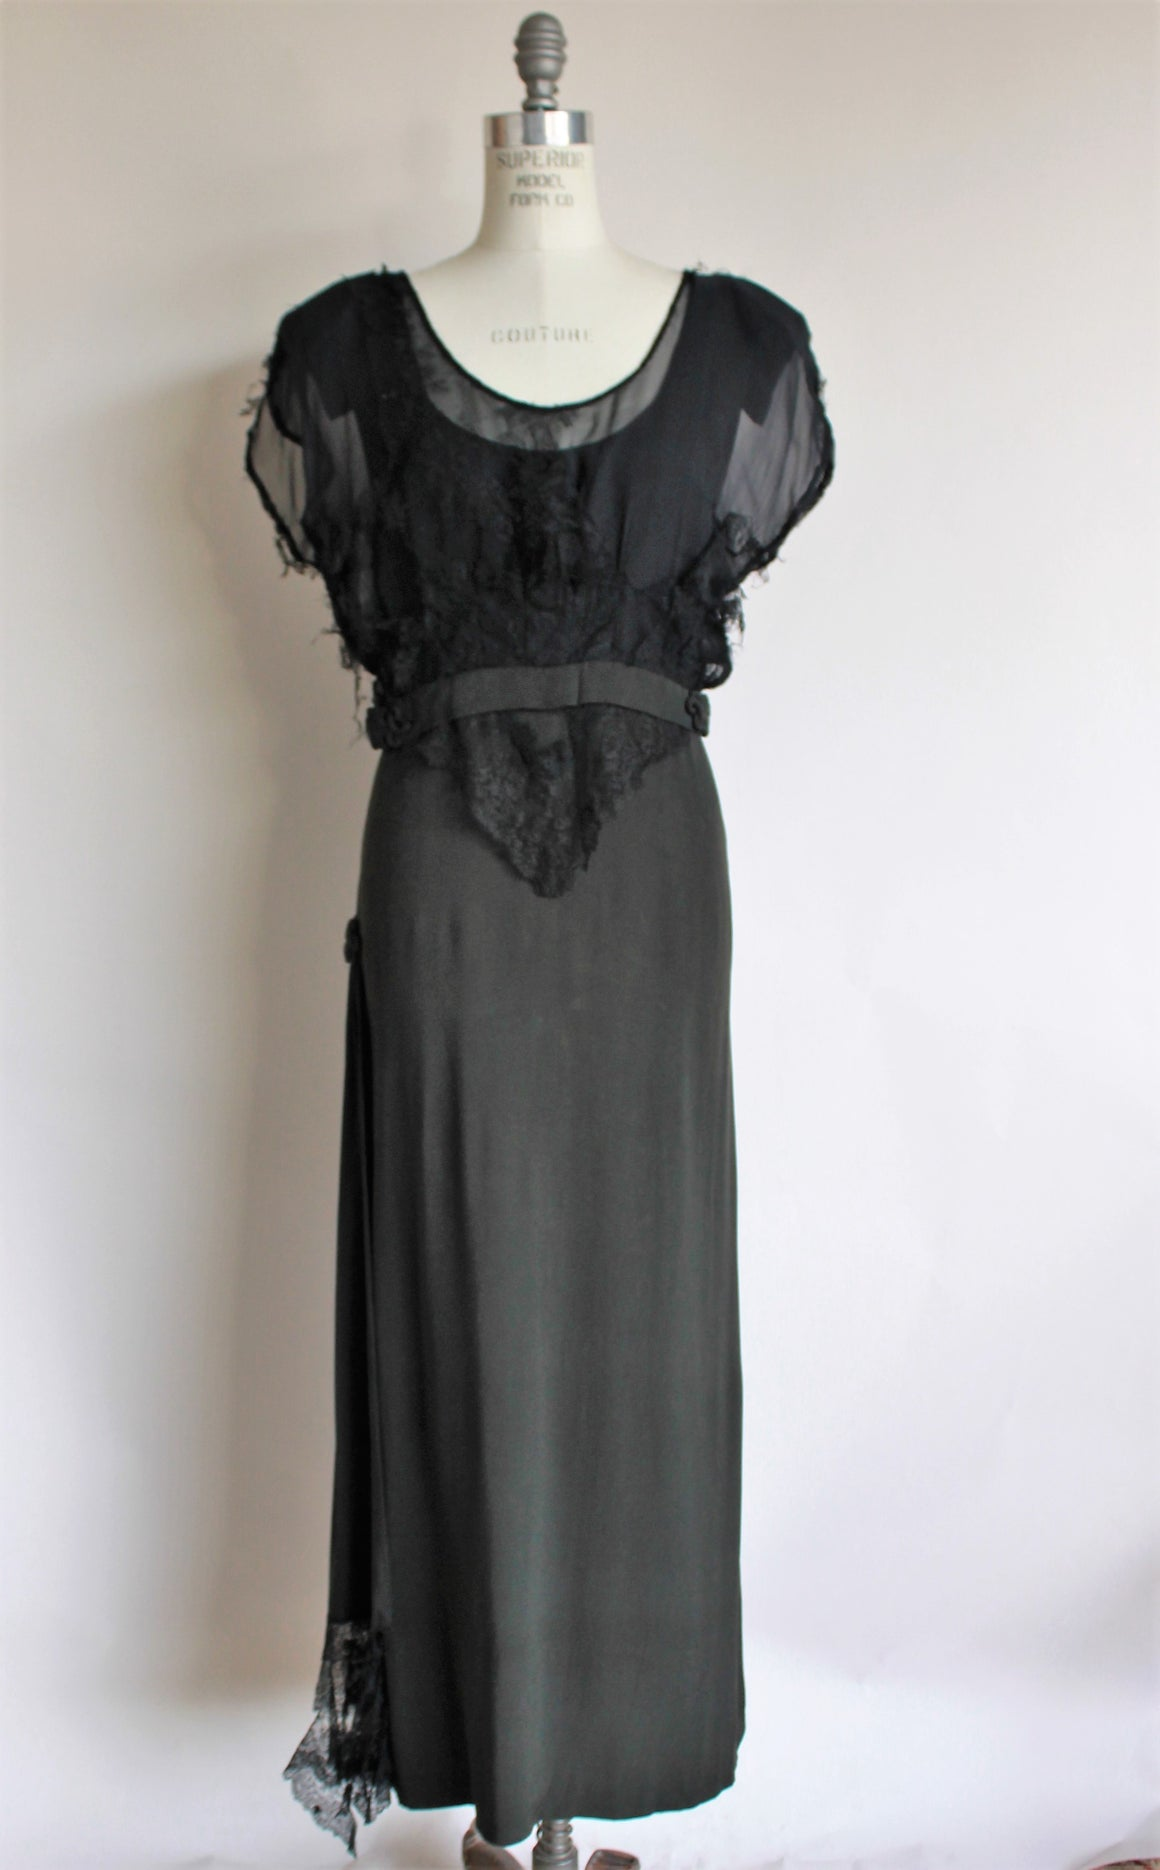 Vintage 1940s Black Rayon Dress With Lace Blouse